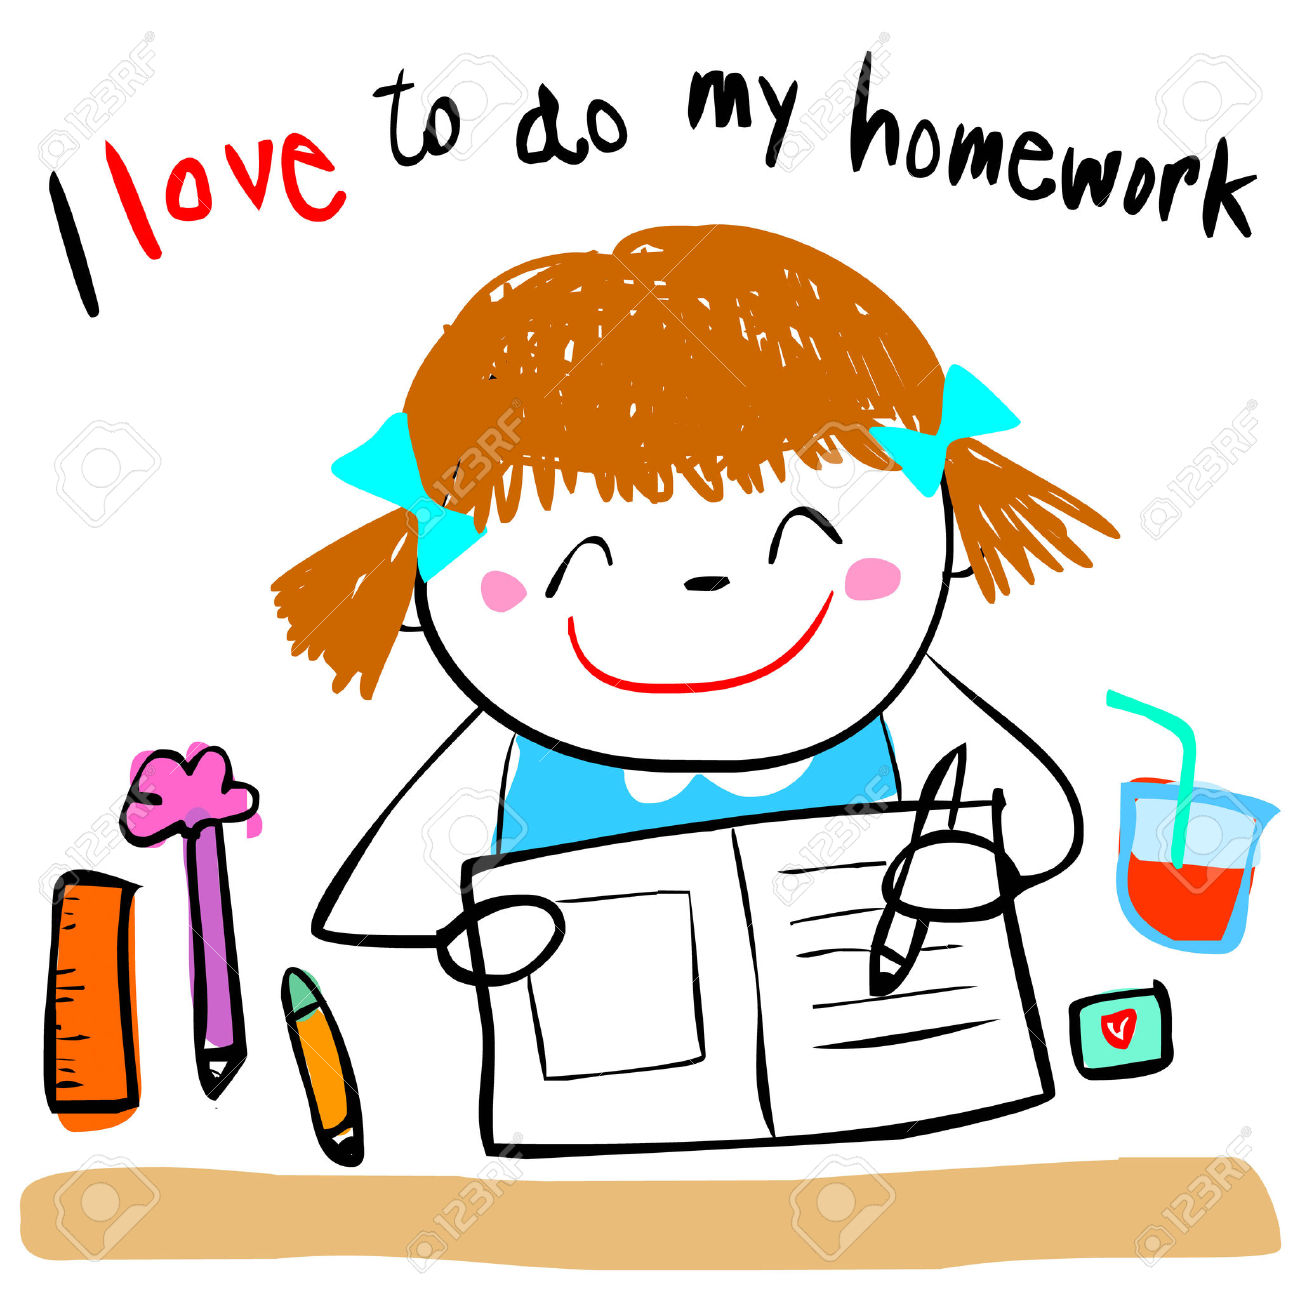 Do homework clipart